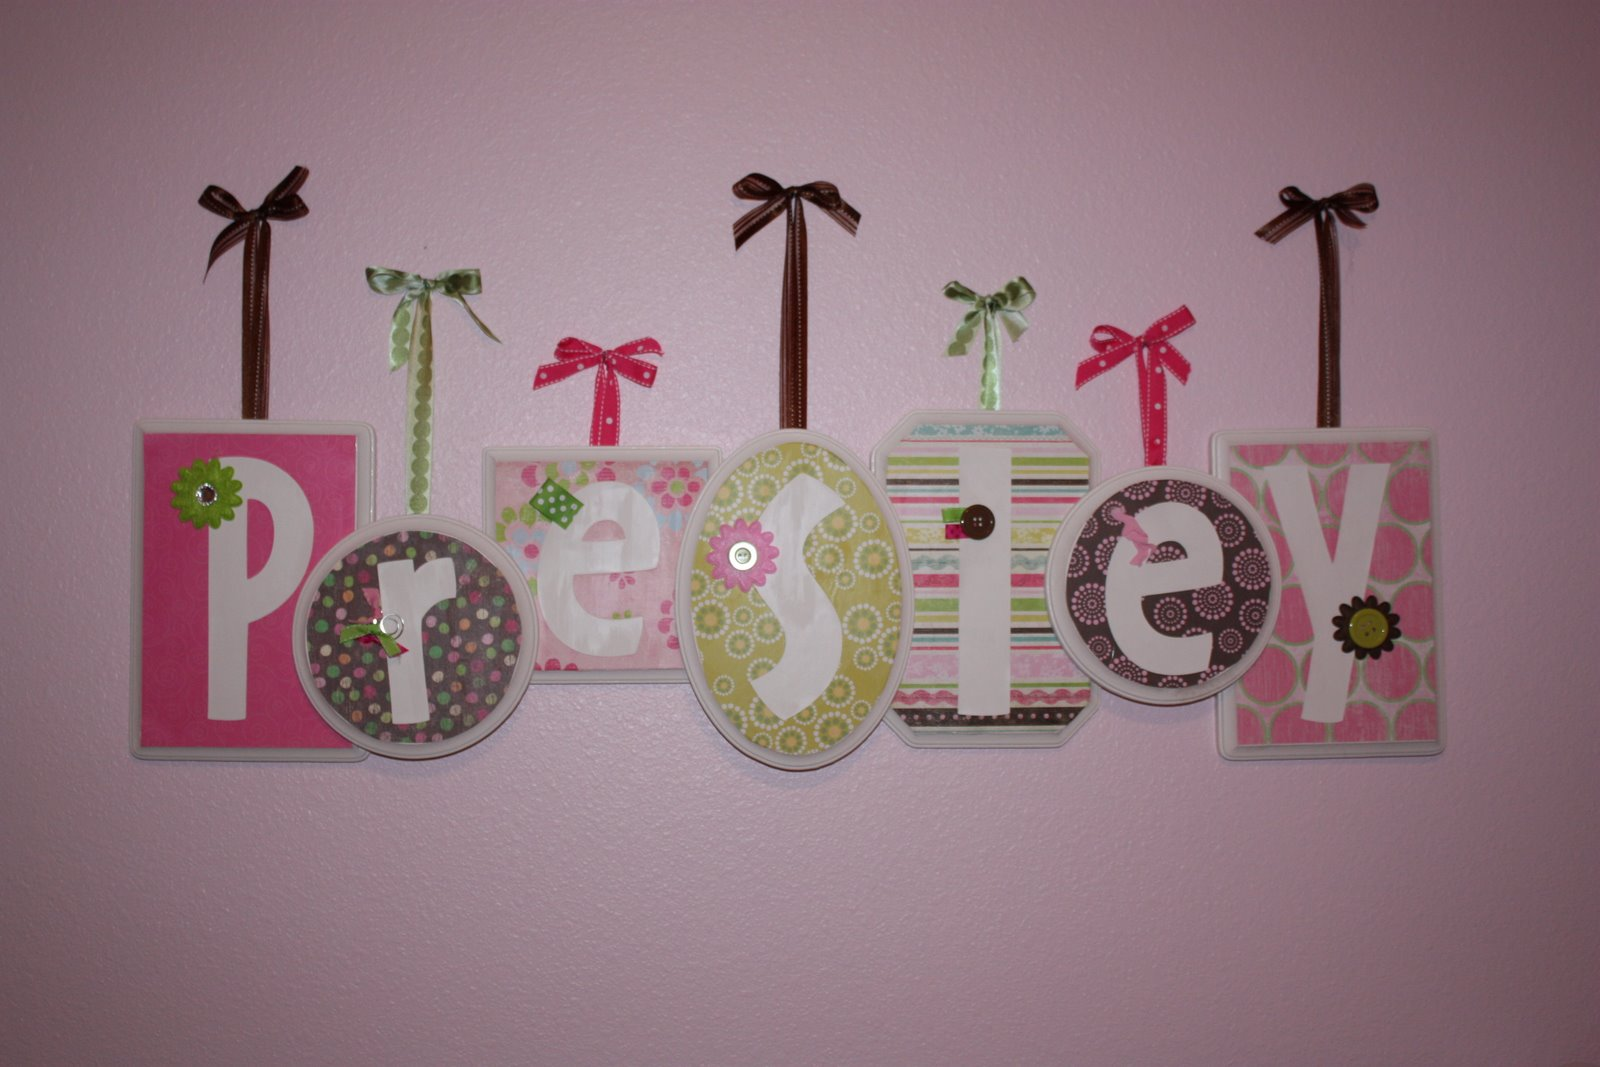 Diy Wall Decor For Baby : Diy decor ideas design dazzle